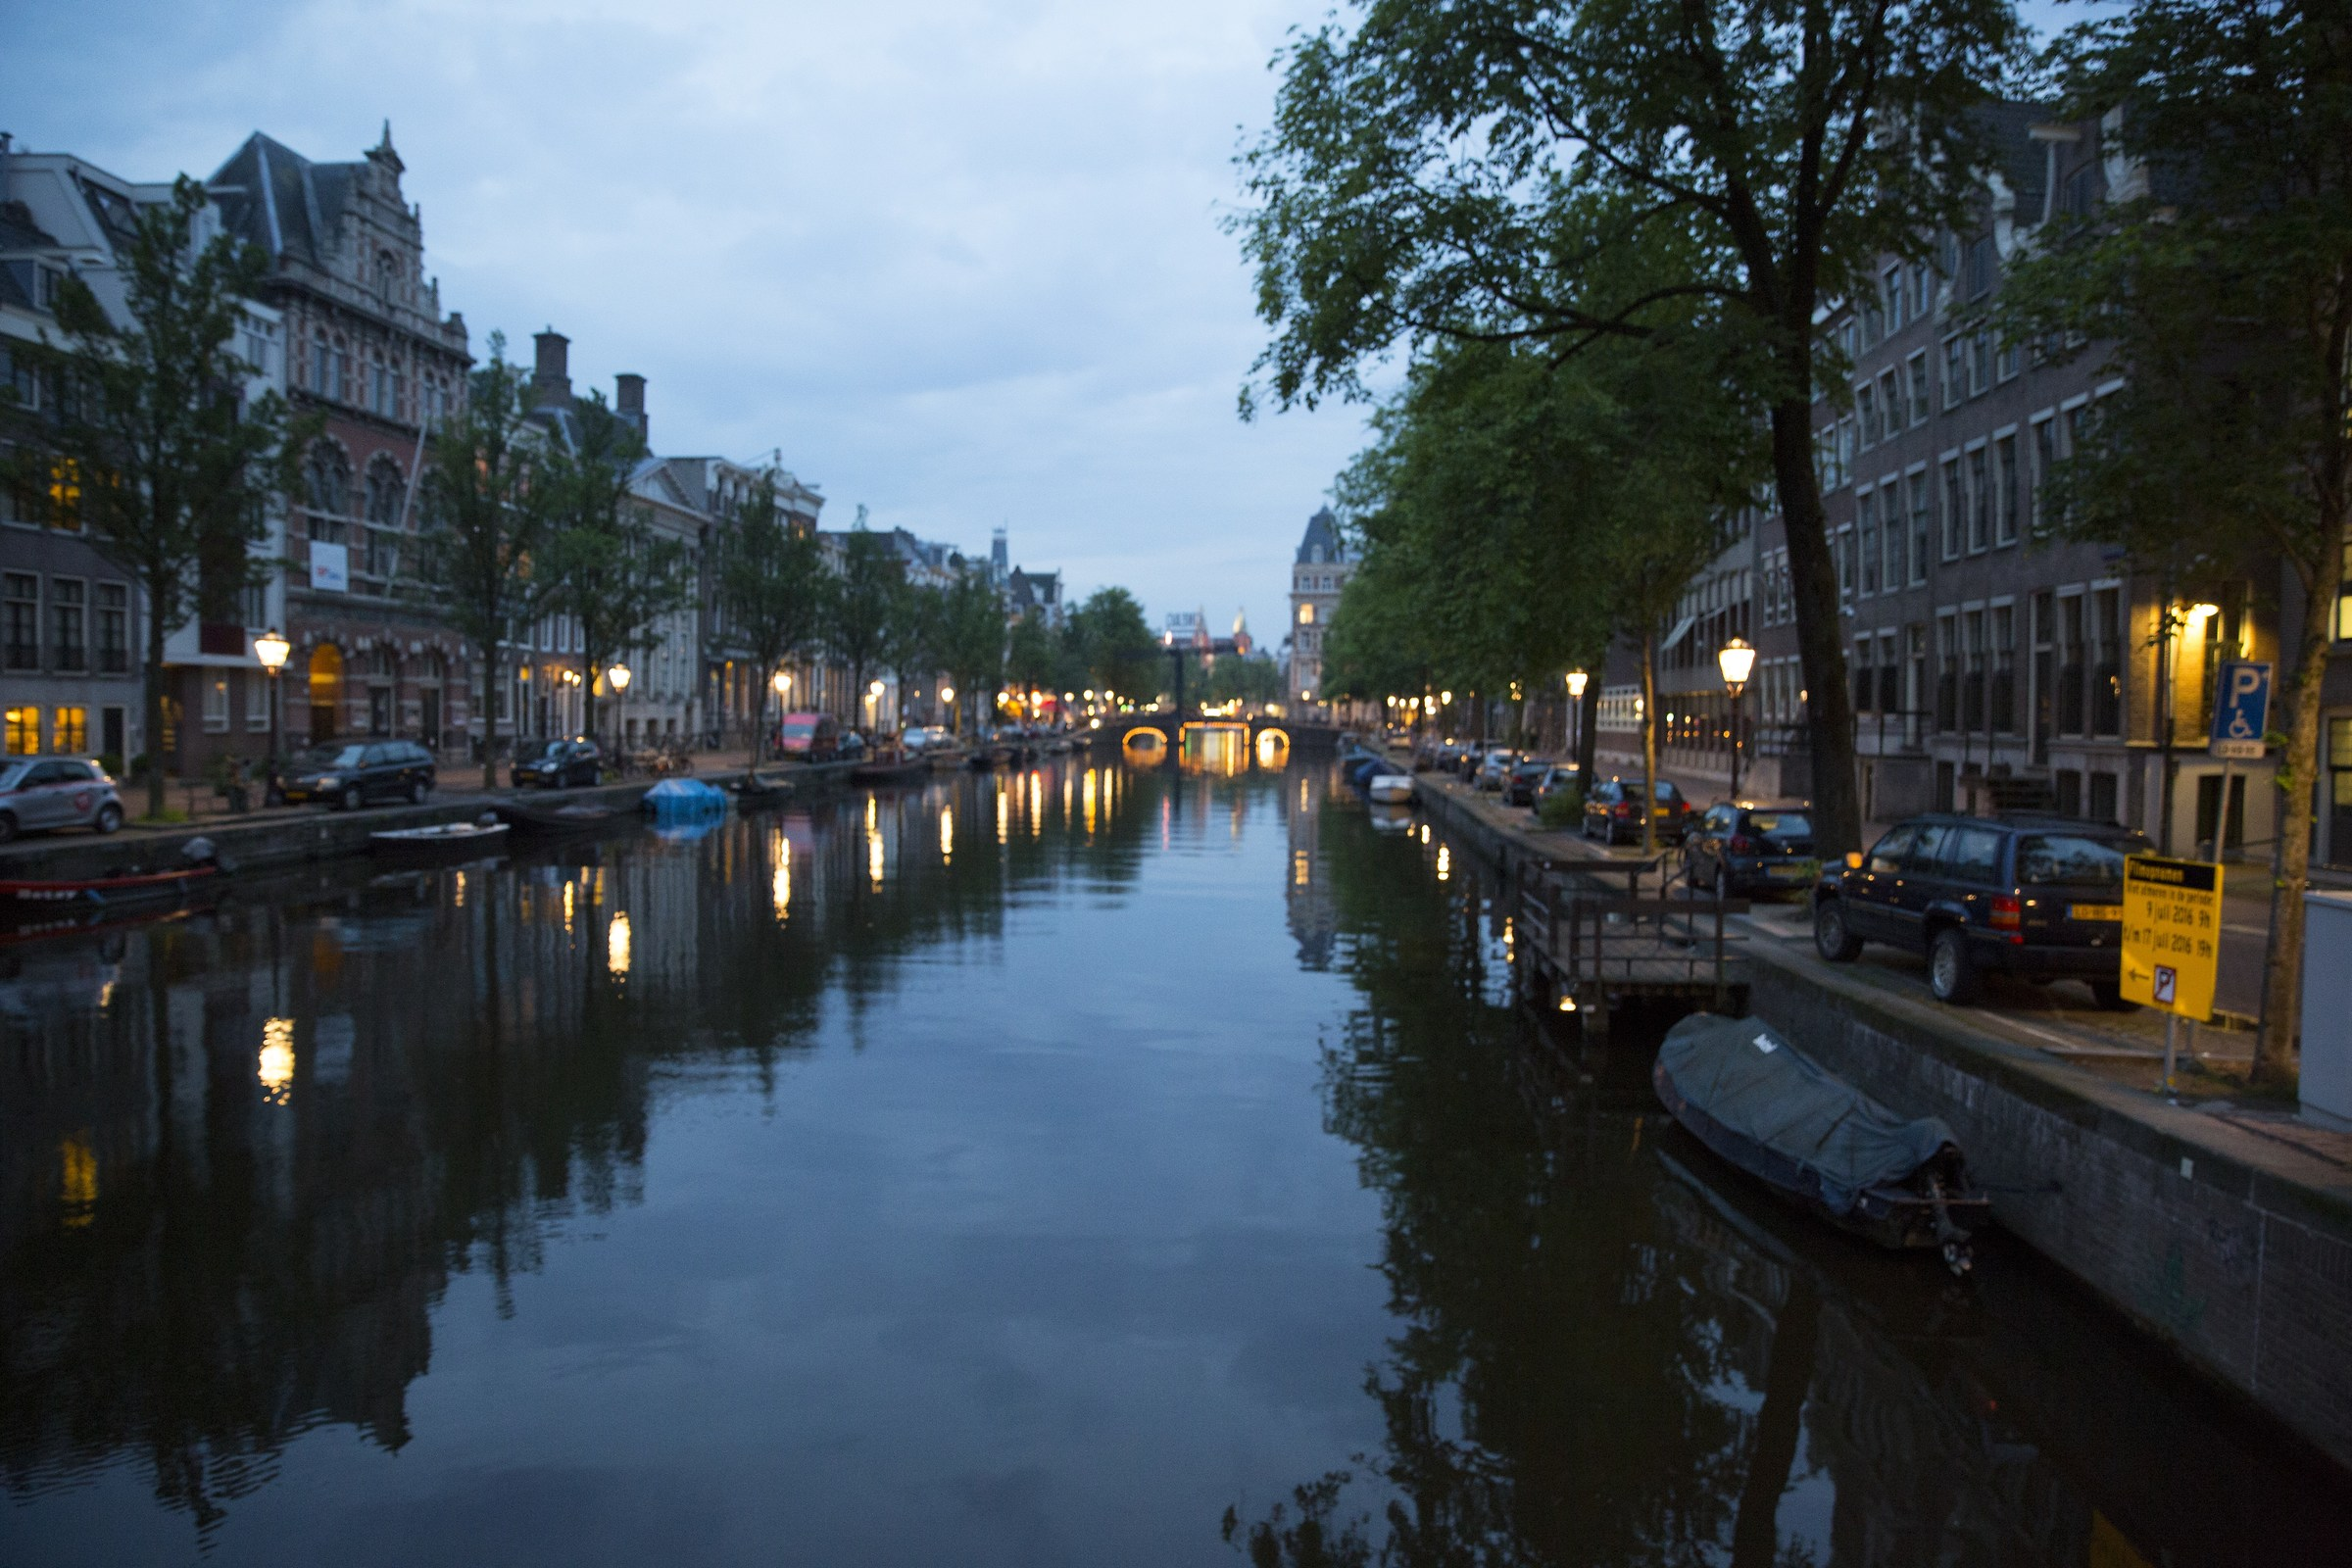 The canals of Amsterdam 2...